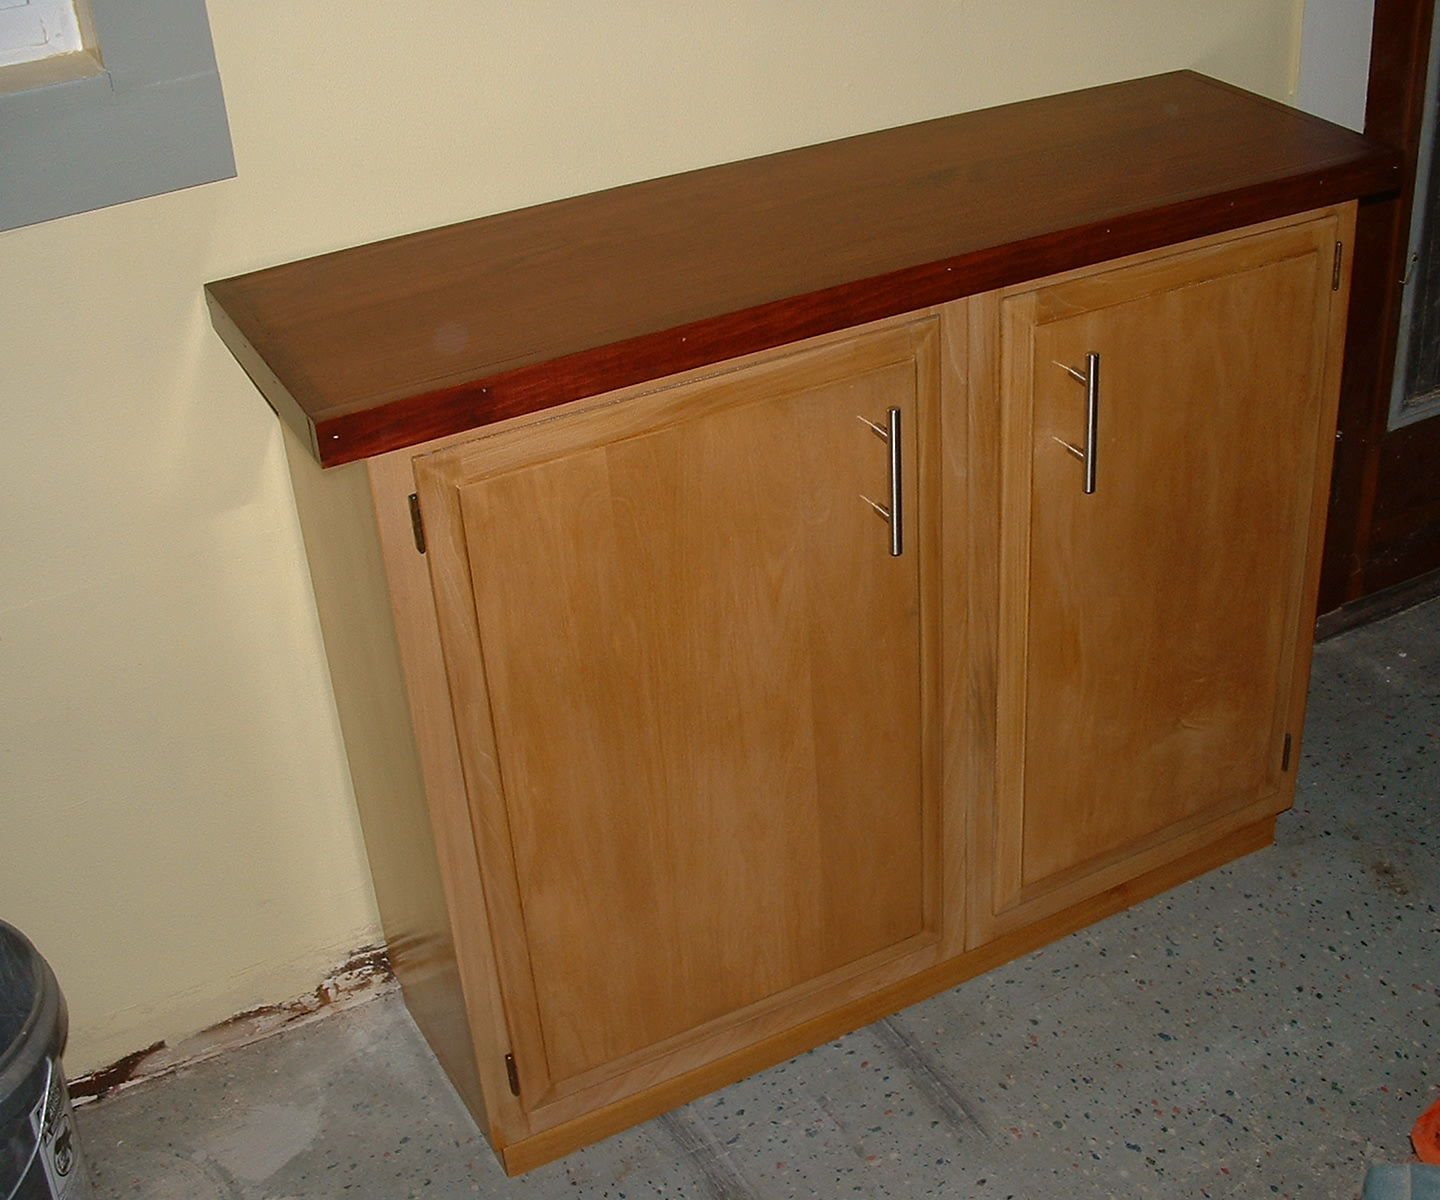 Construct a Sideboard From Kitchen Wall Cabinets